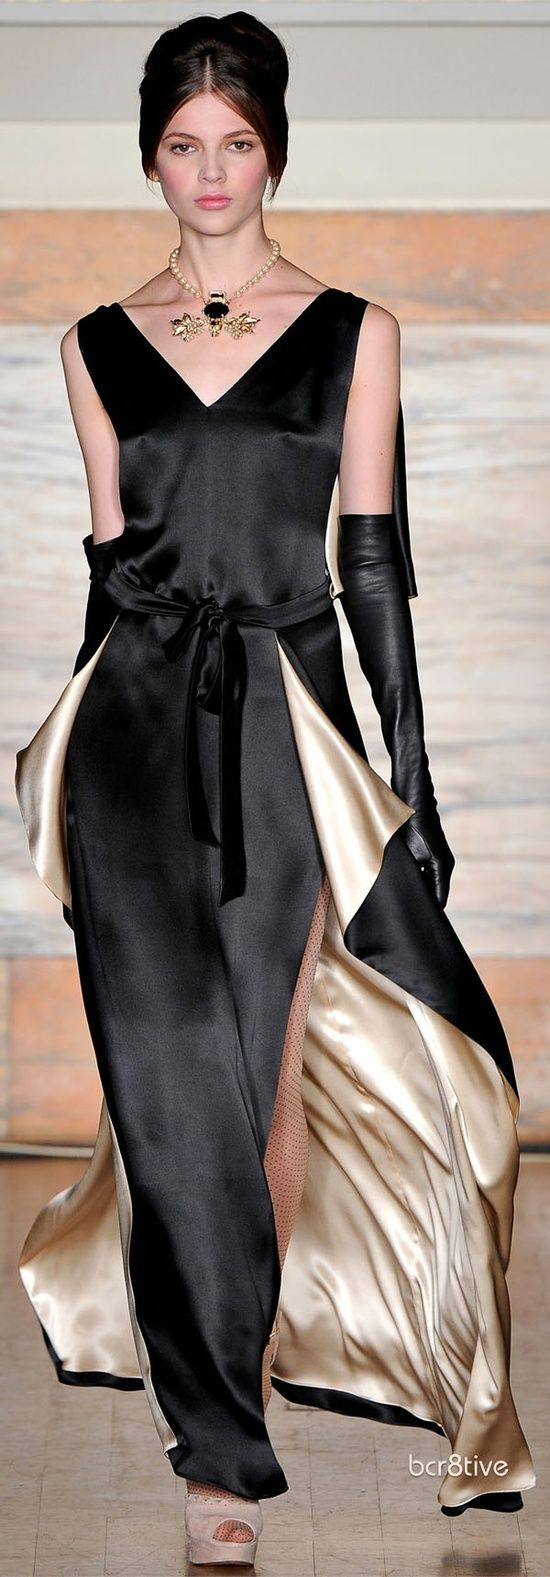 34 Best What To Wear To The Opera Images On Pinterest My